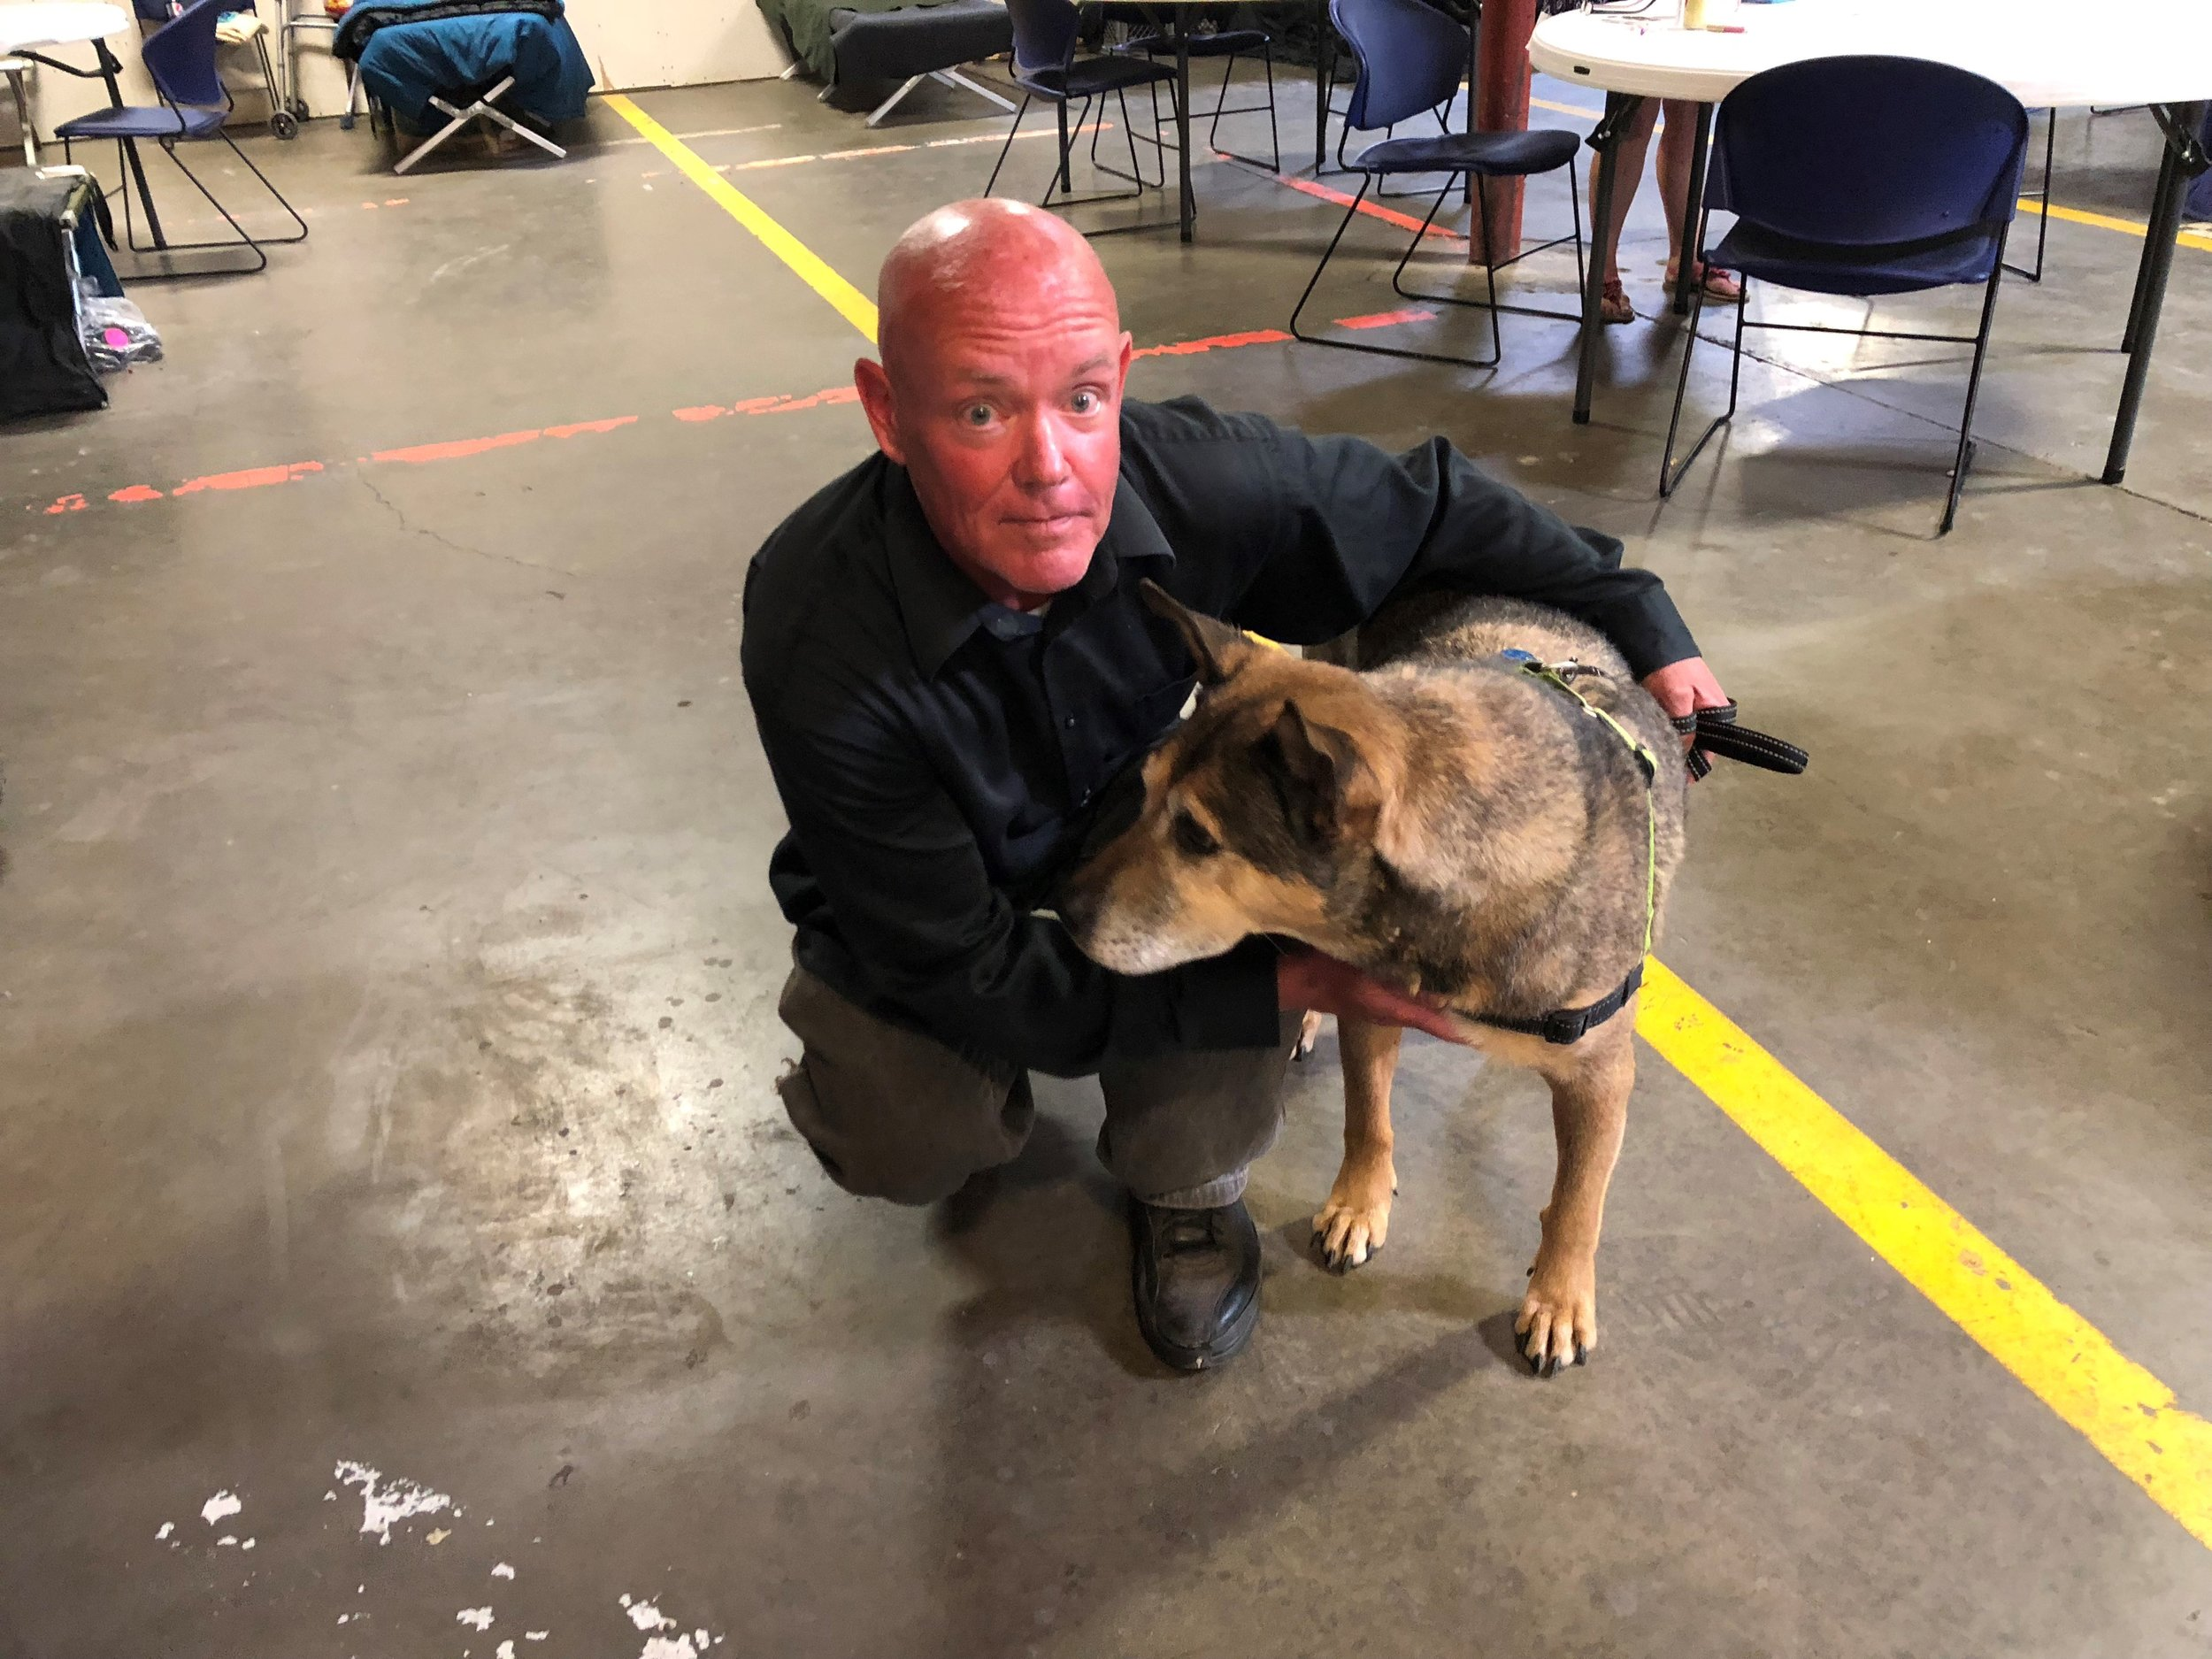 """James Fitzhugh has been homeless for three years and has spent most of his time on the street. Here he is with his dog, Ruben Sierra. James is currently looking for a job. He says the Triage Center has """"saved a lot of people."""""""